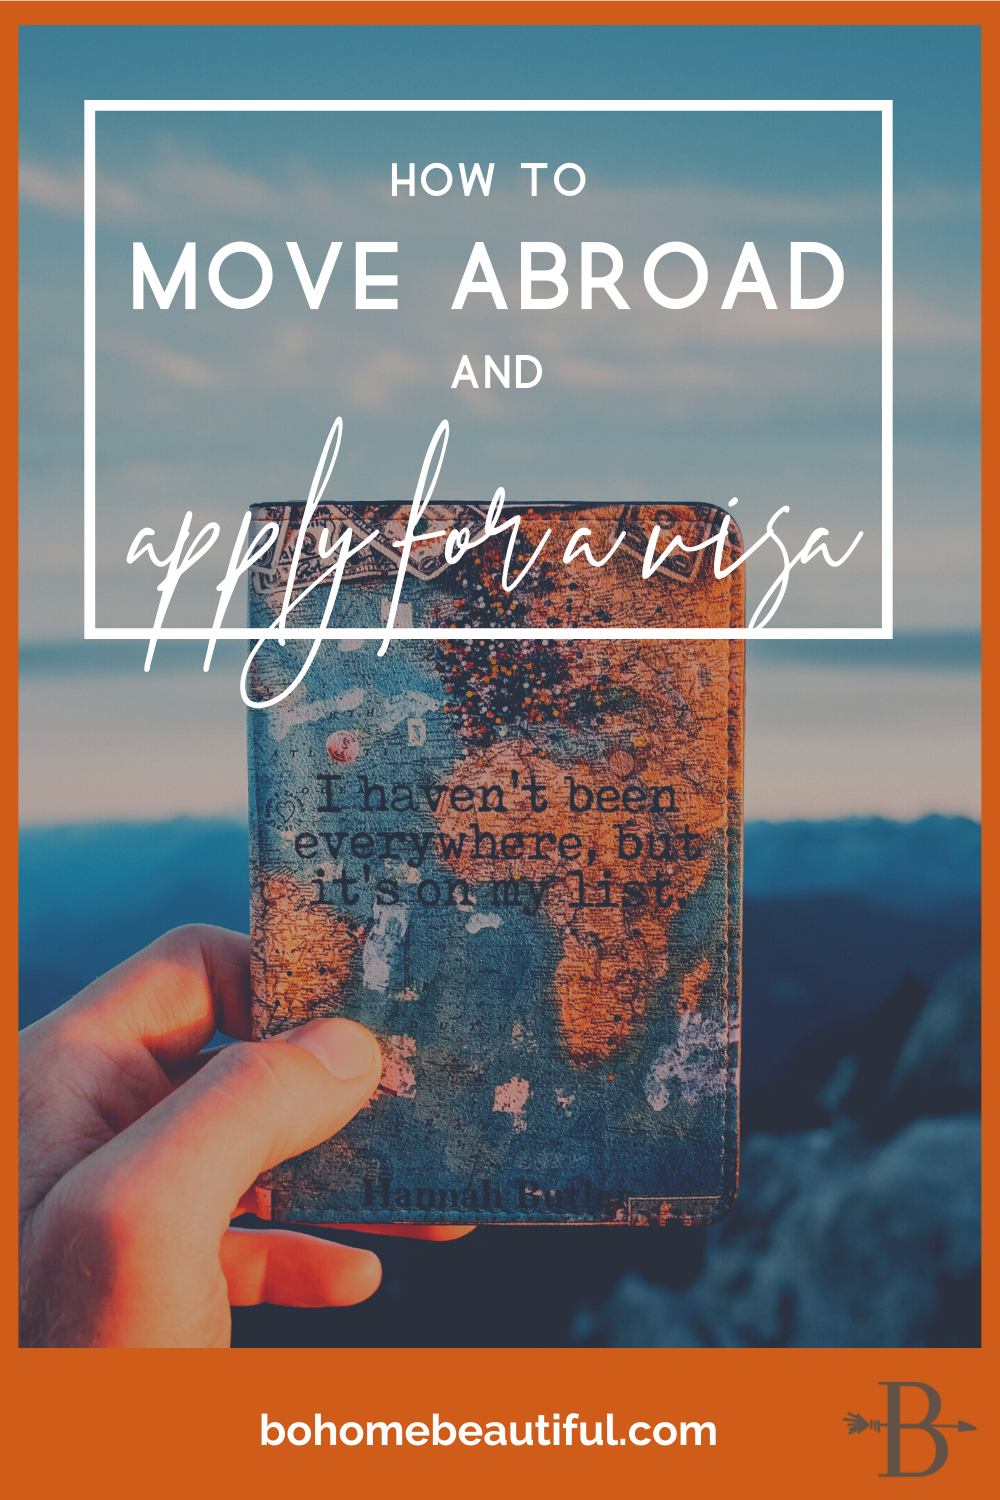 Pin text overlay - how to apply for a visa before moving abroad